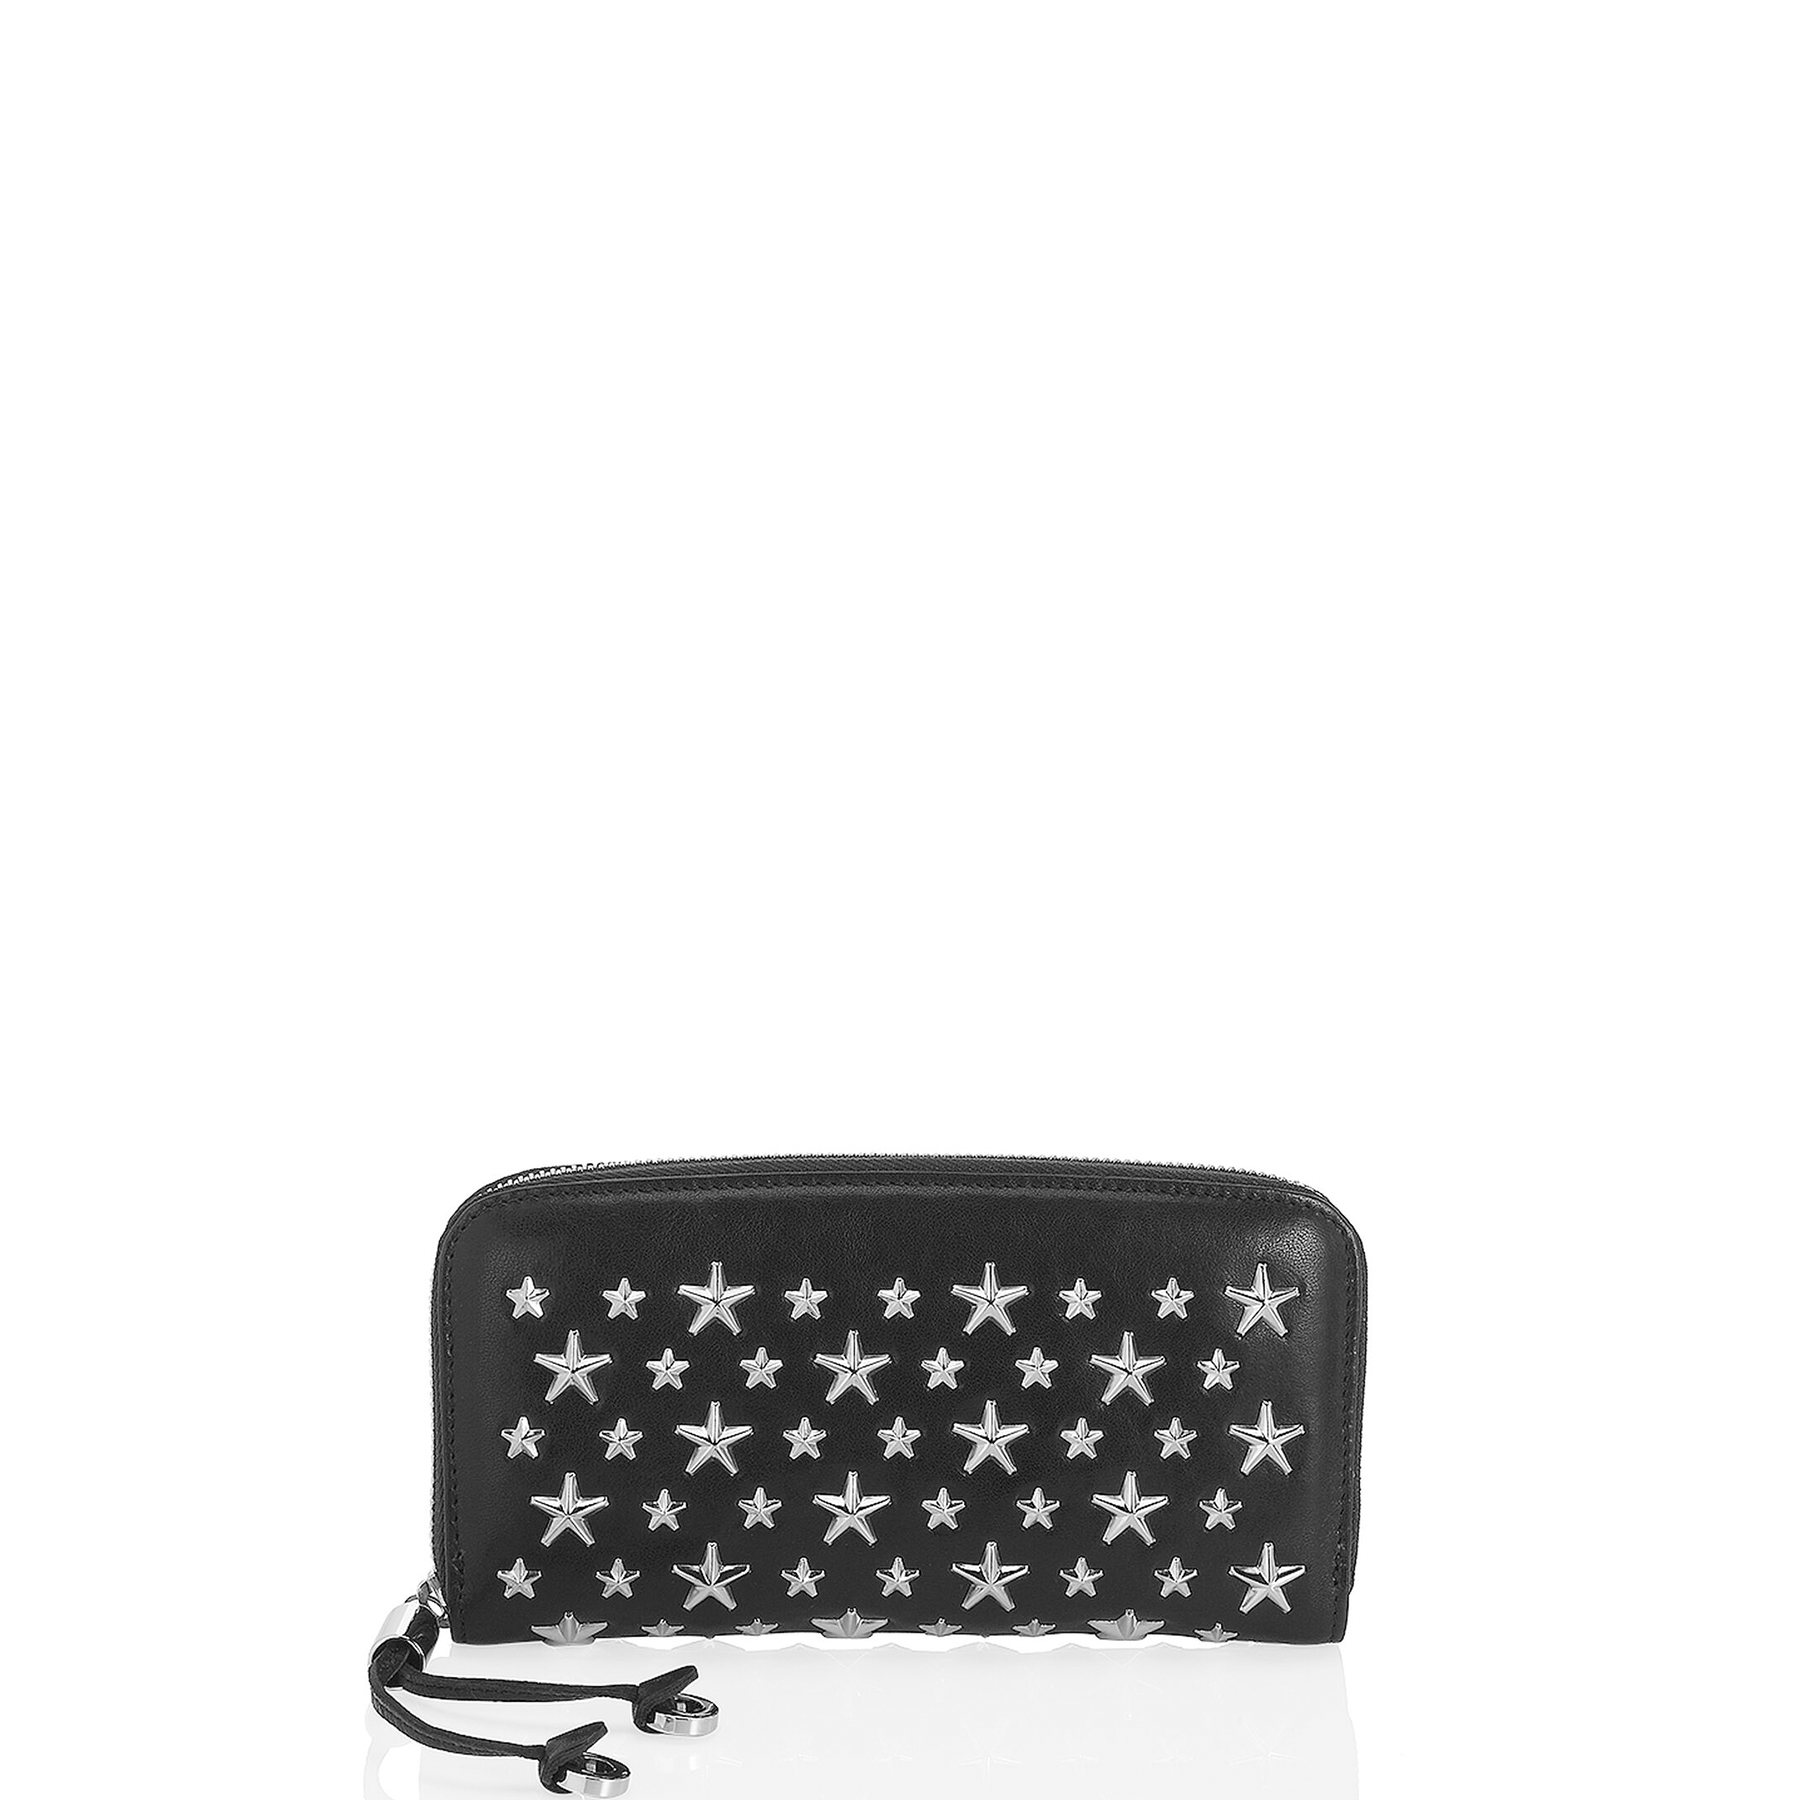 FILIPA Black Leather Wallet with Stars